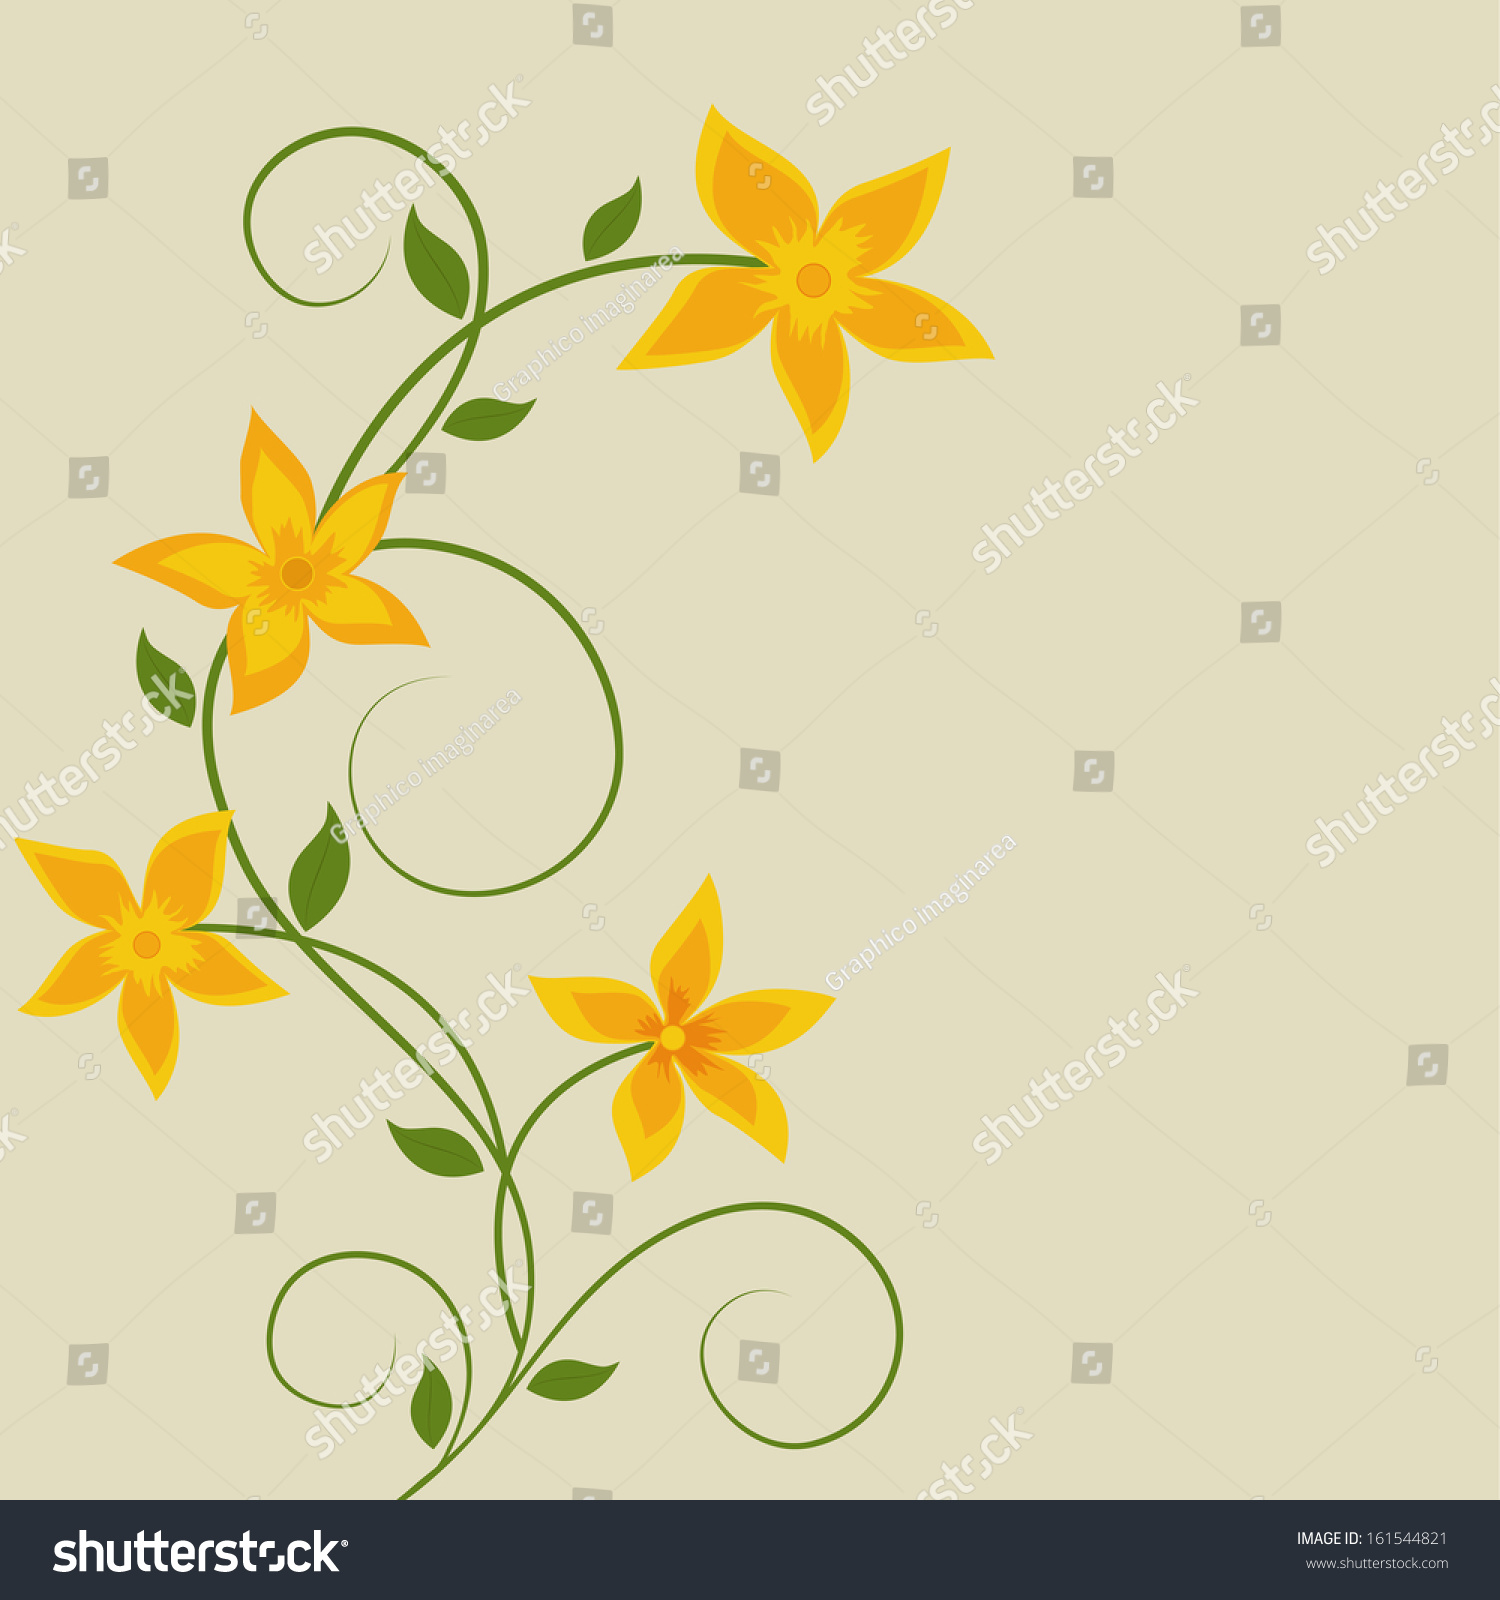 Beautiful Yellow Flower Floral Background Design Eps 10 Stock Vector